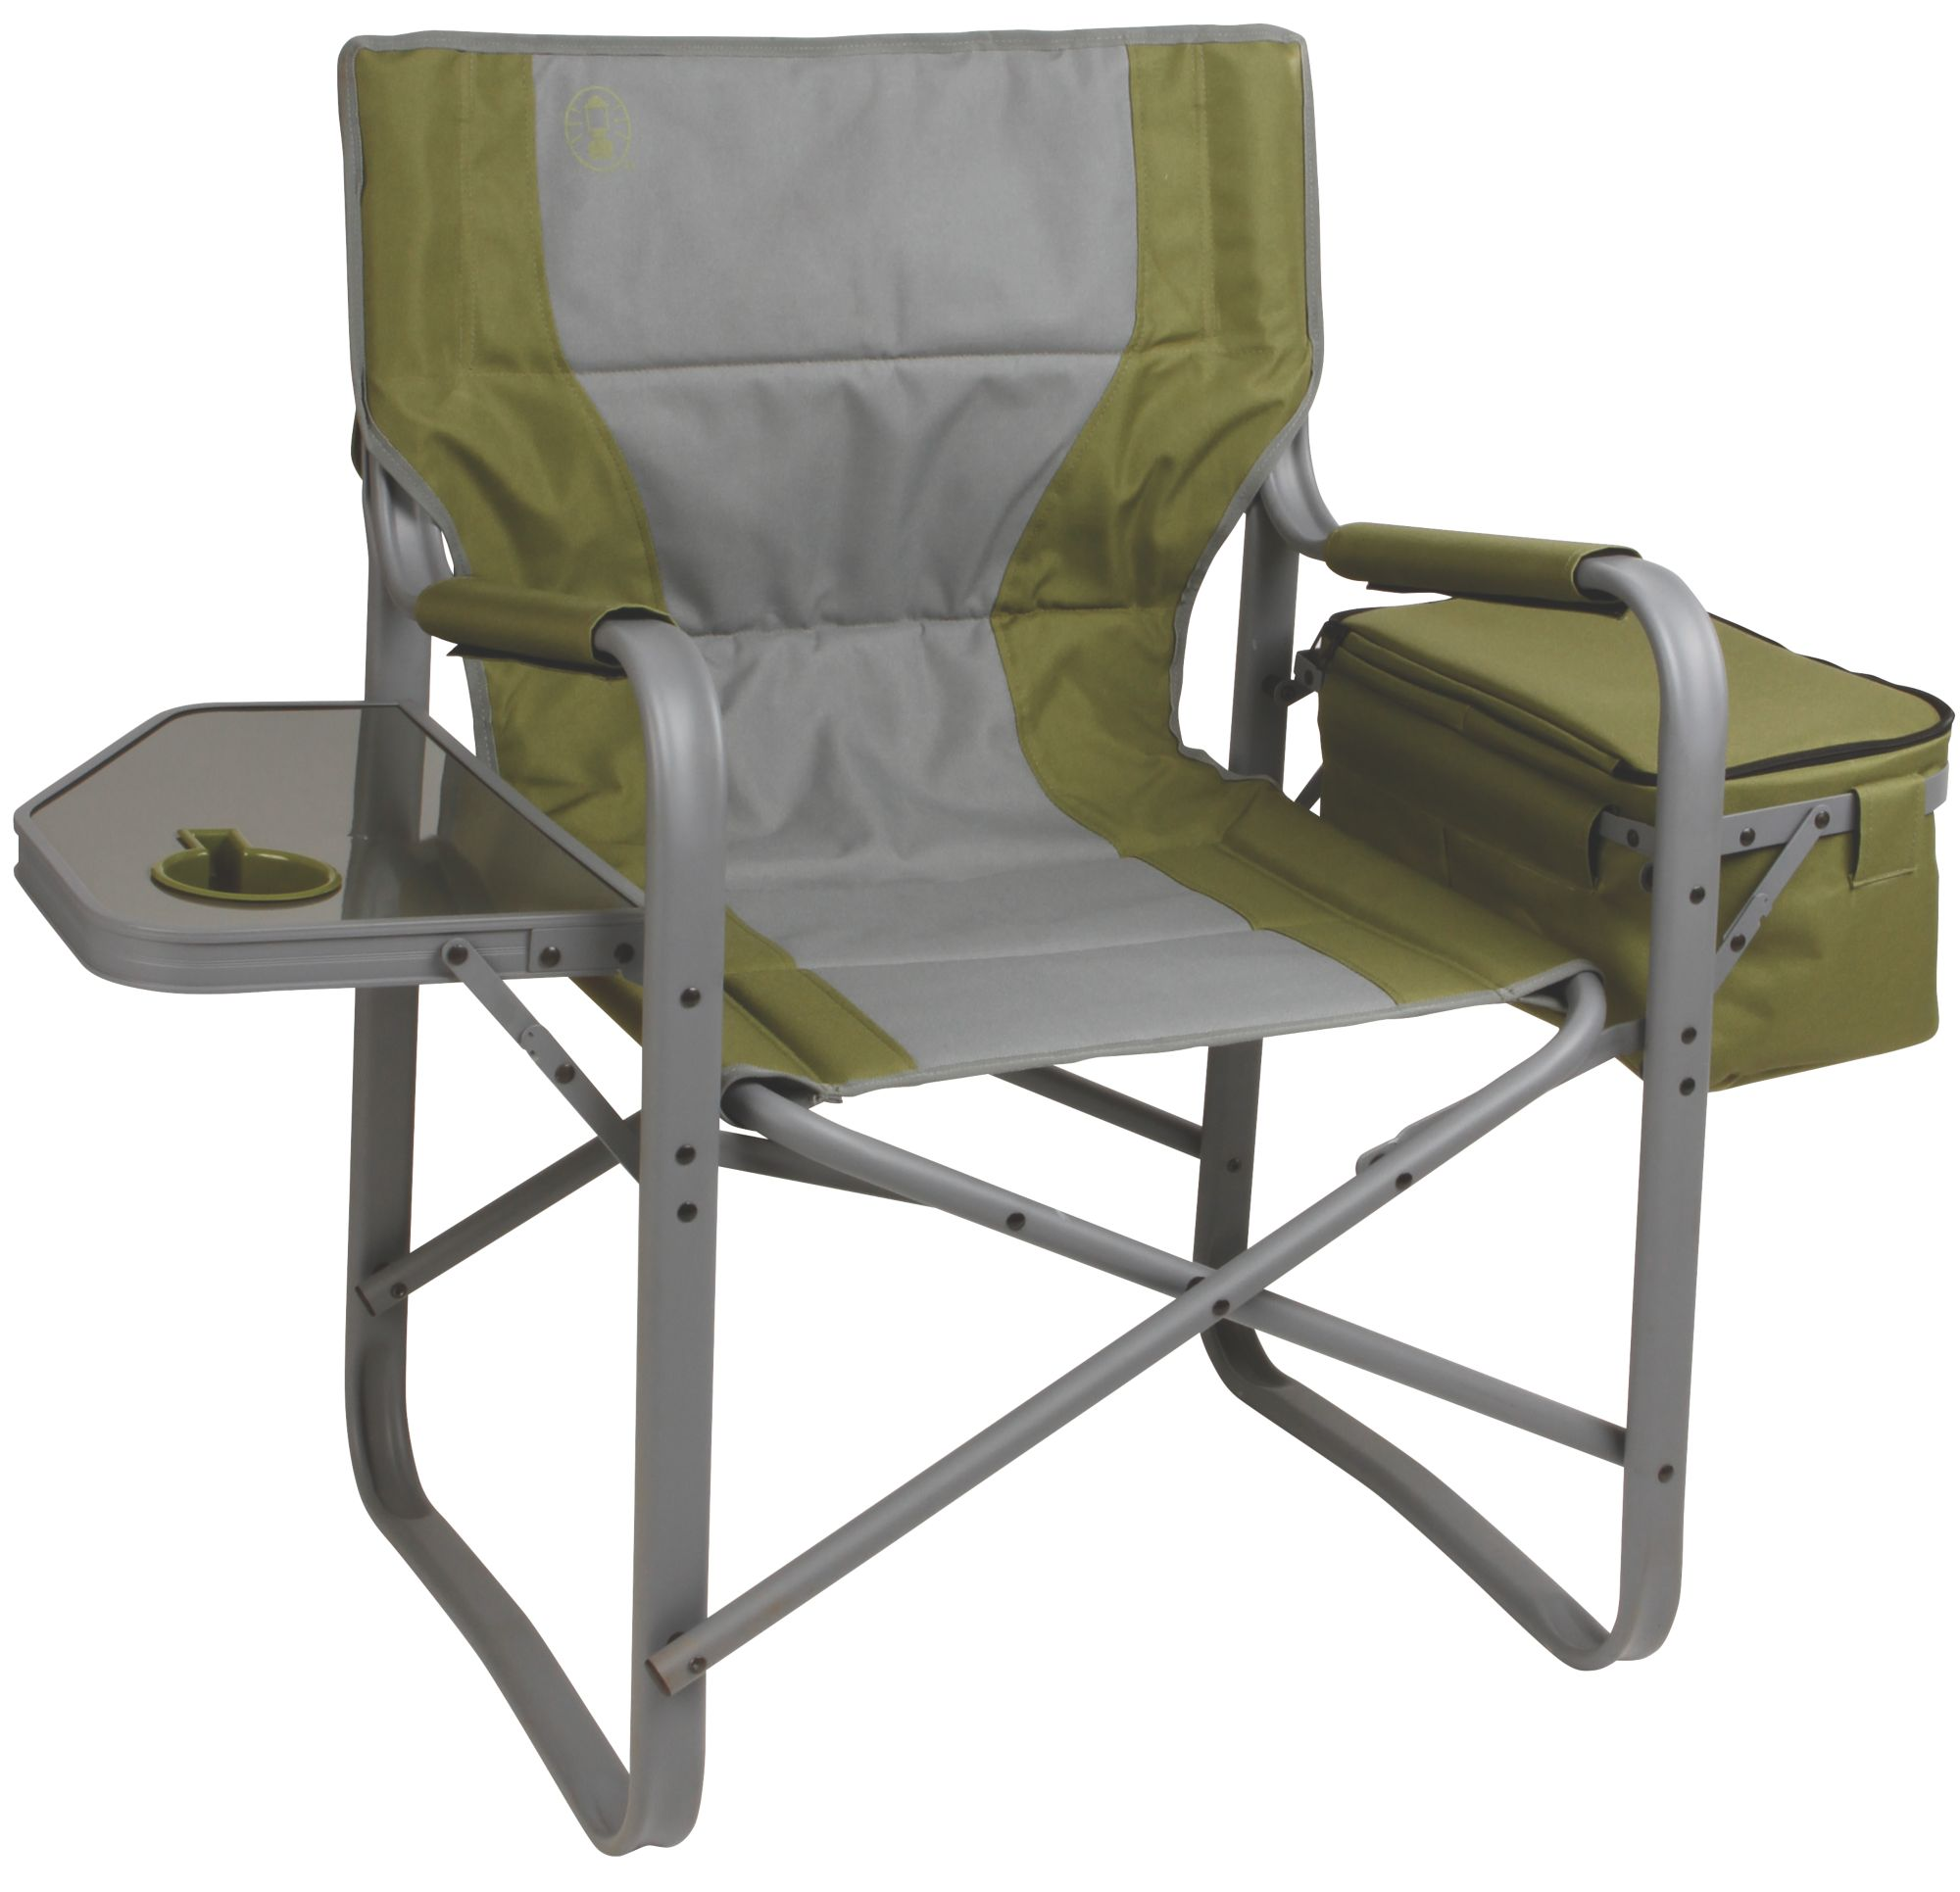 Camp Chair Chair with Cooler